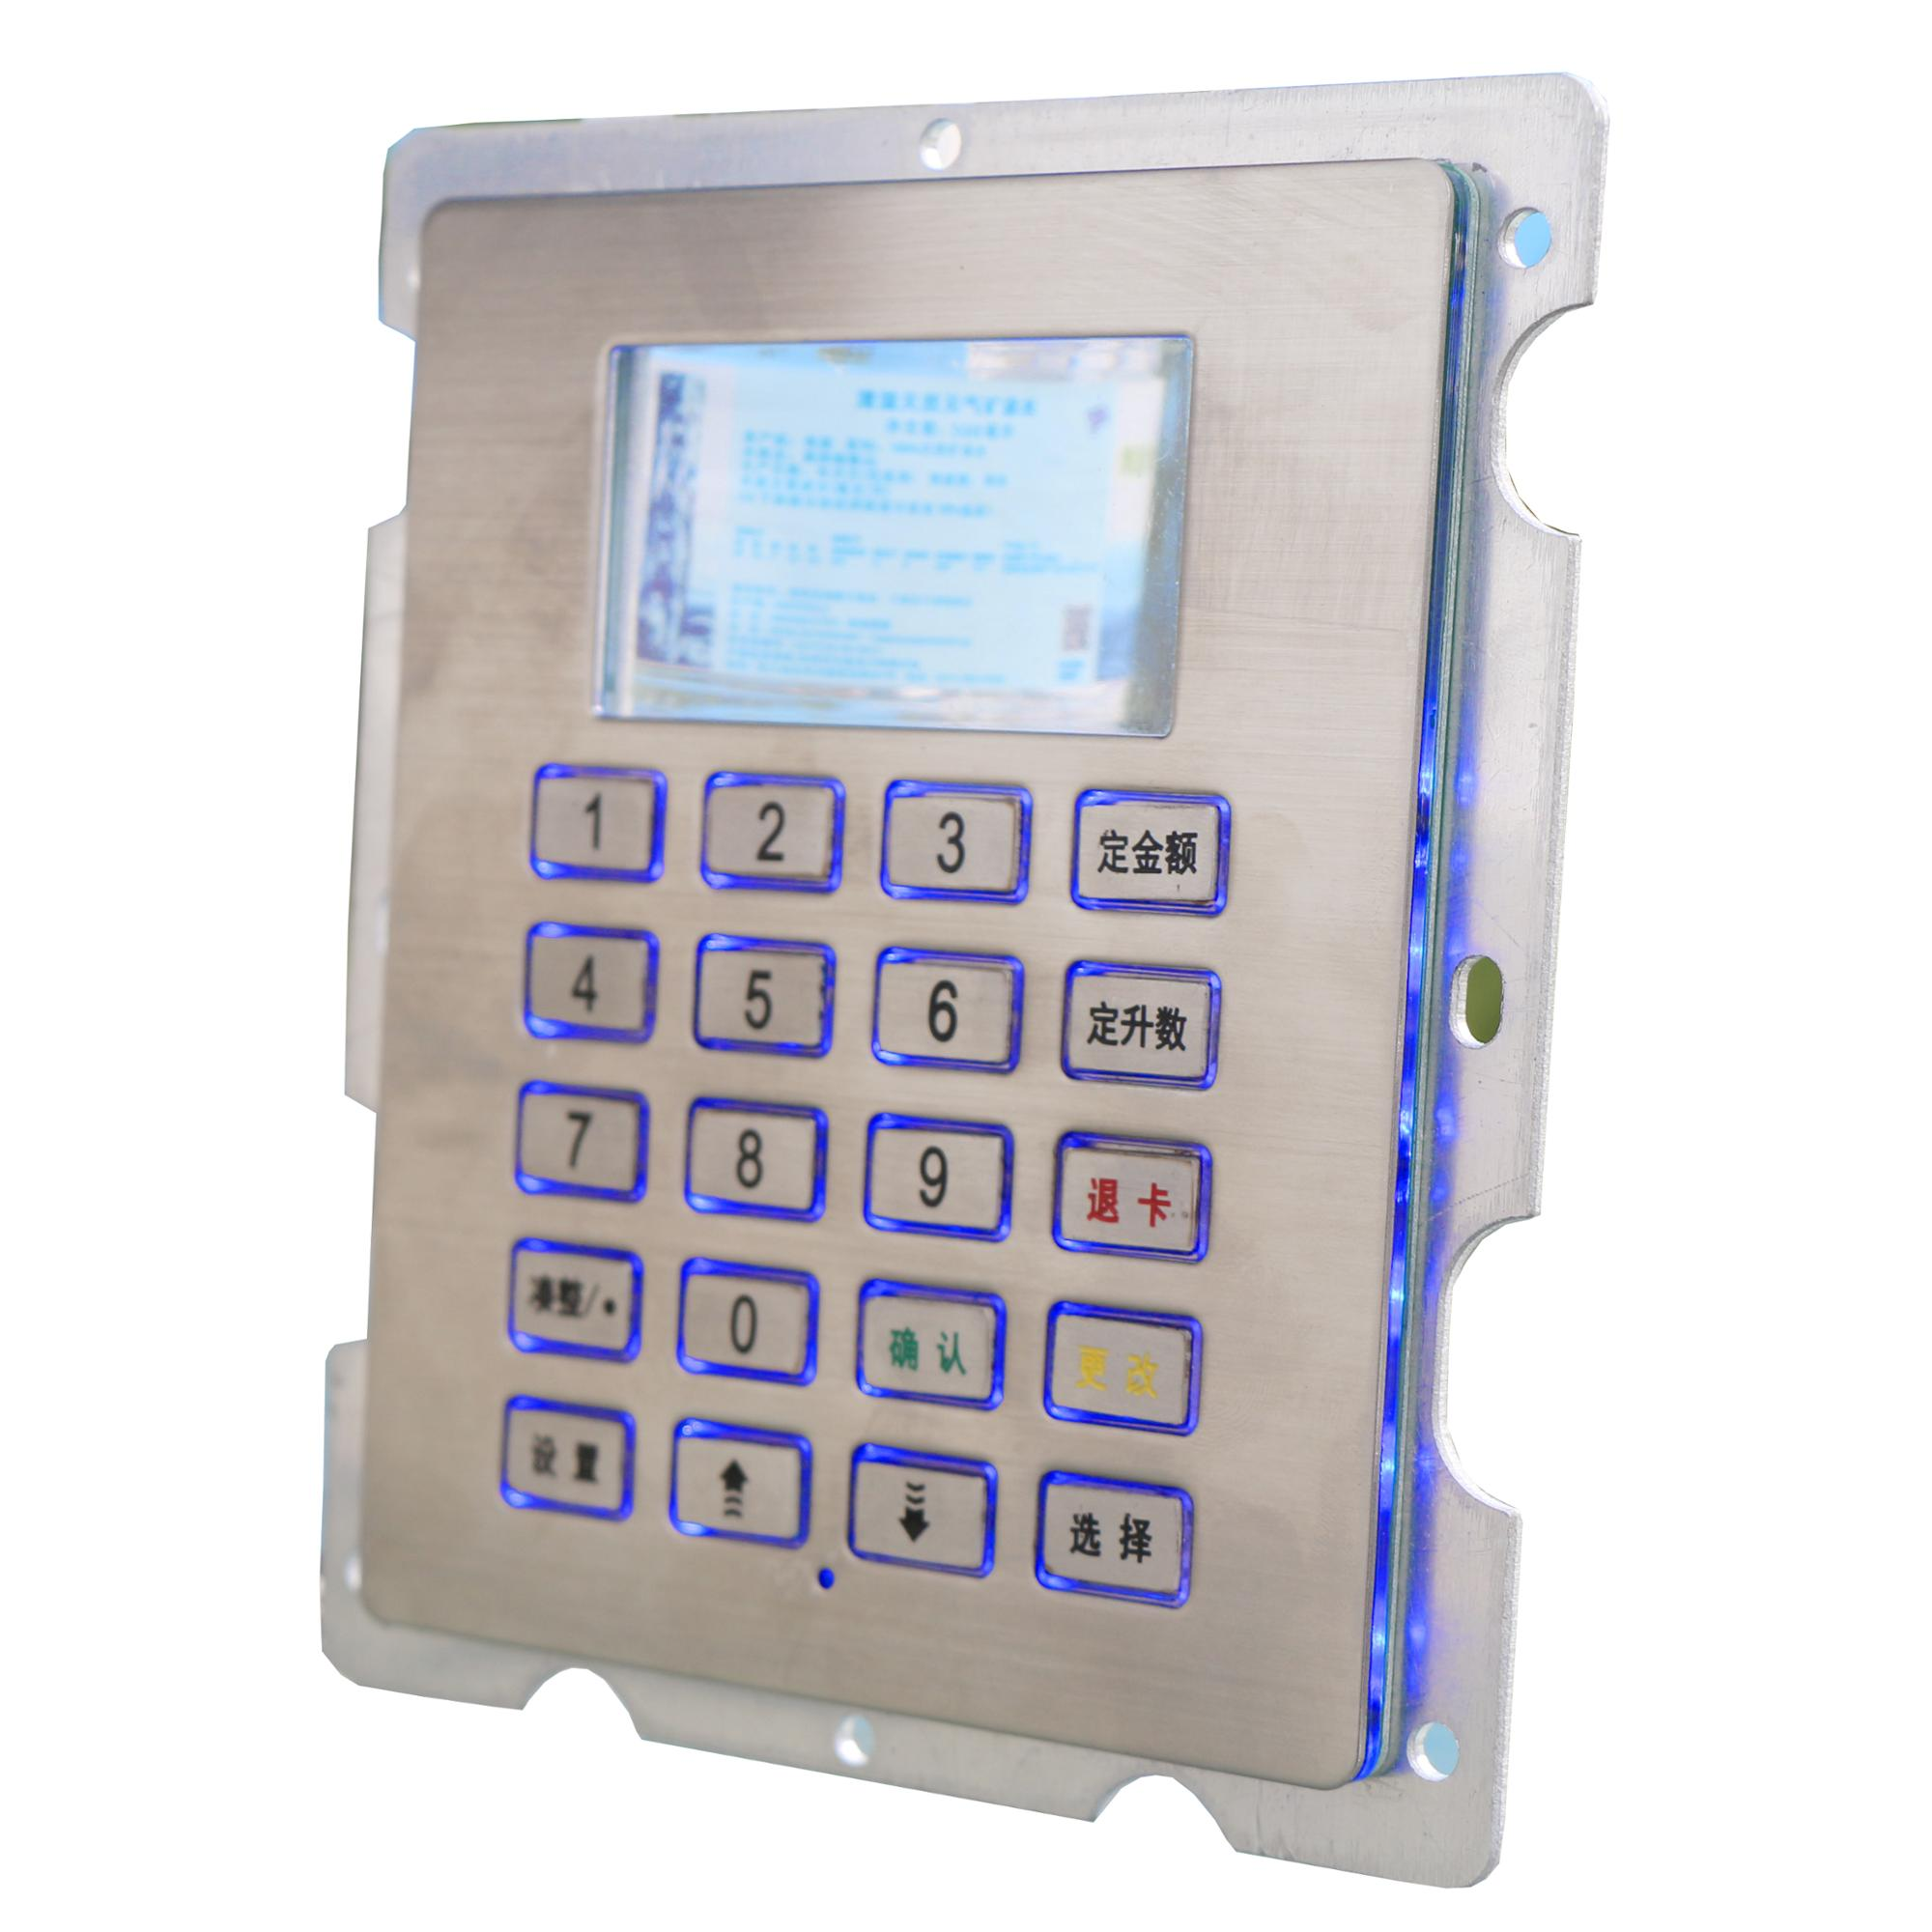 ip65 4x5 waterproof usb numeric matrix telephone keypad 4x4